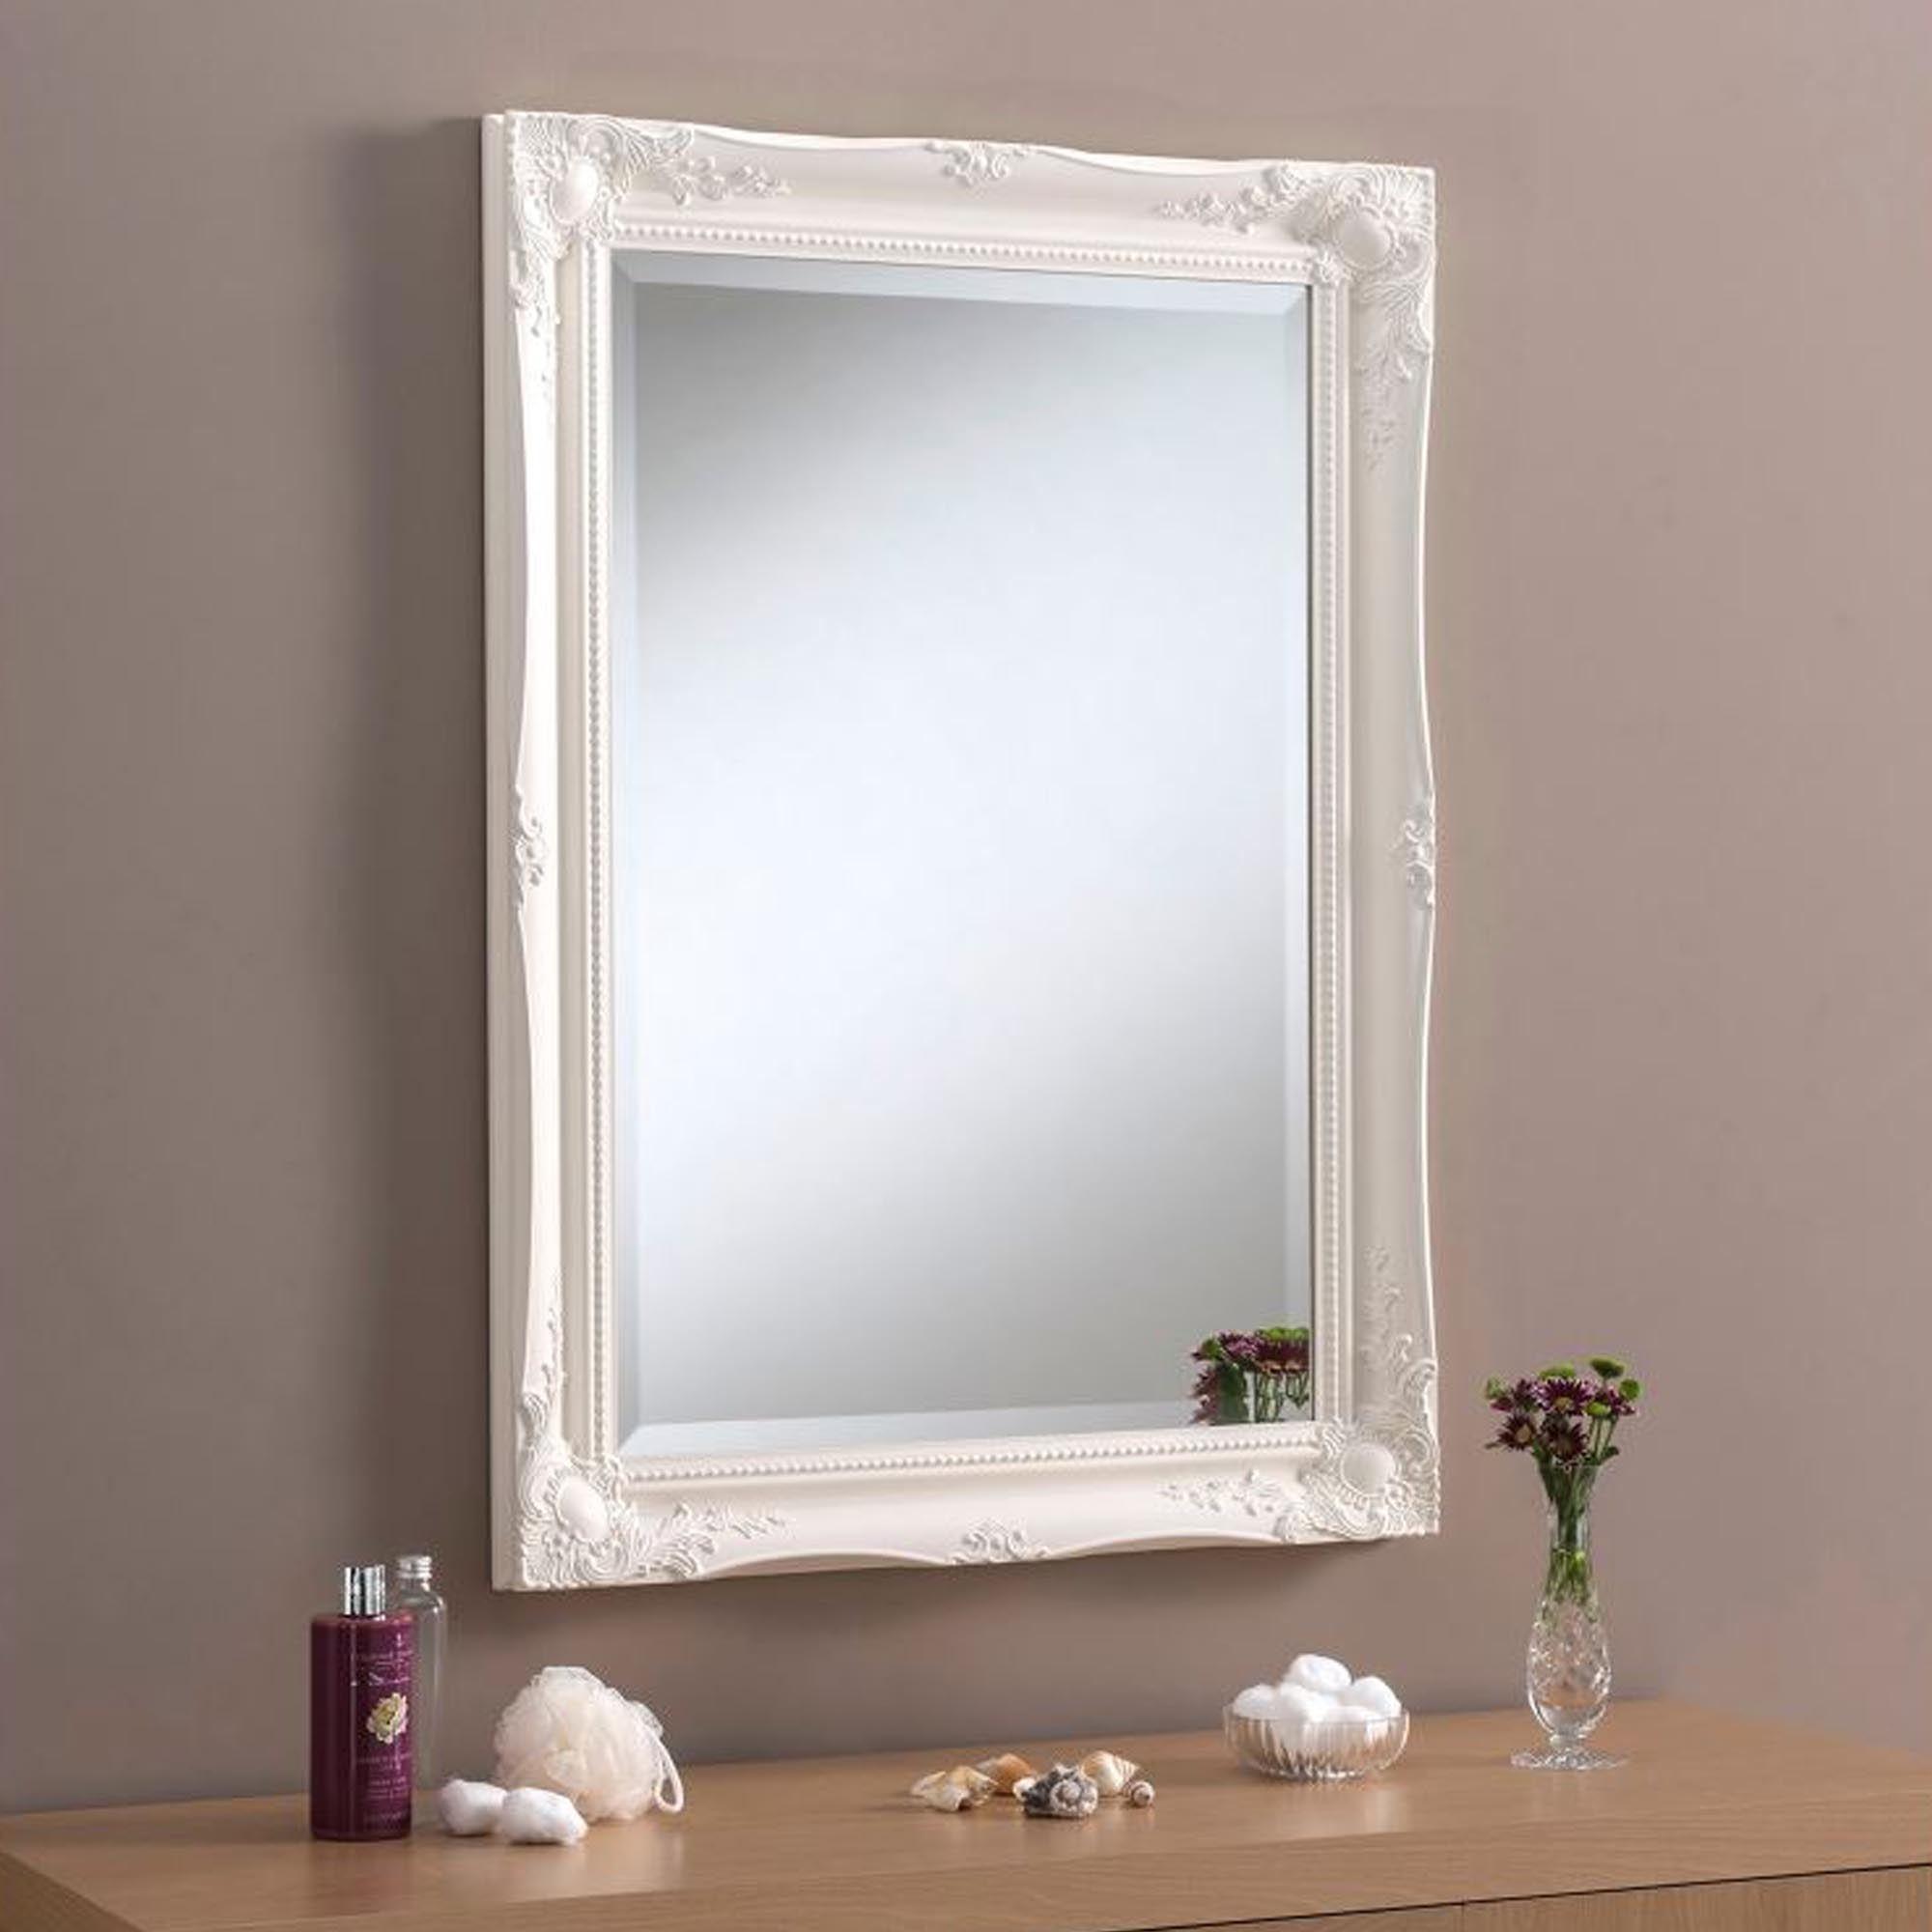 Current White Decorative Wall Mirrors With Decorative Ornate Antique French Style White Wall Mirror (View 7 of 20)